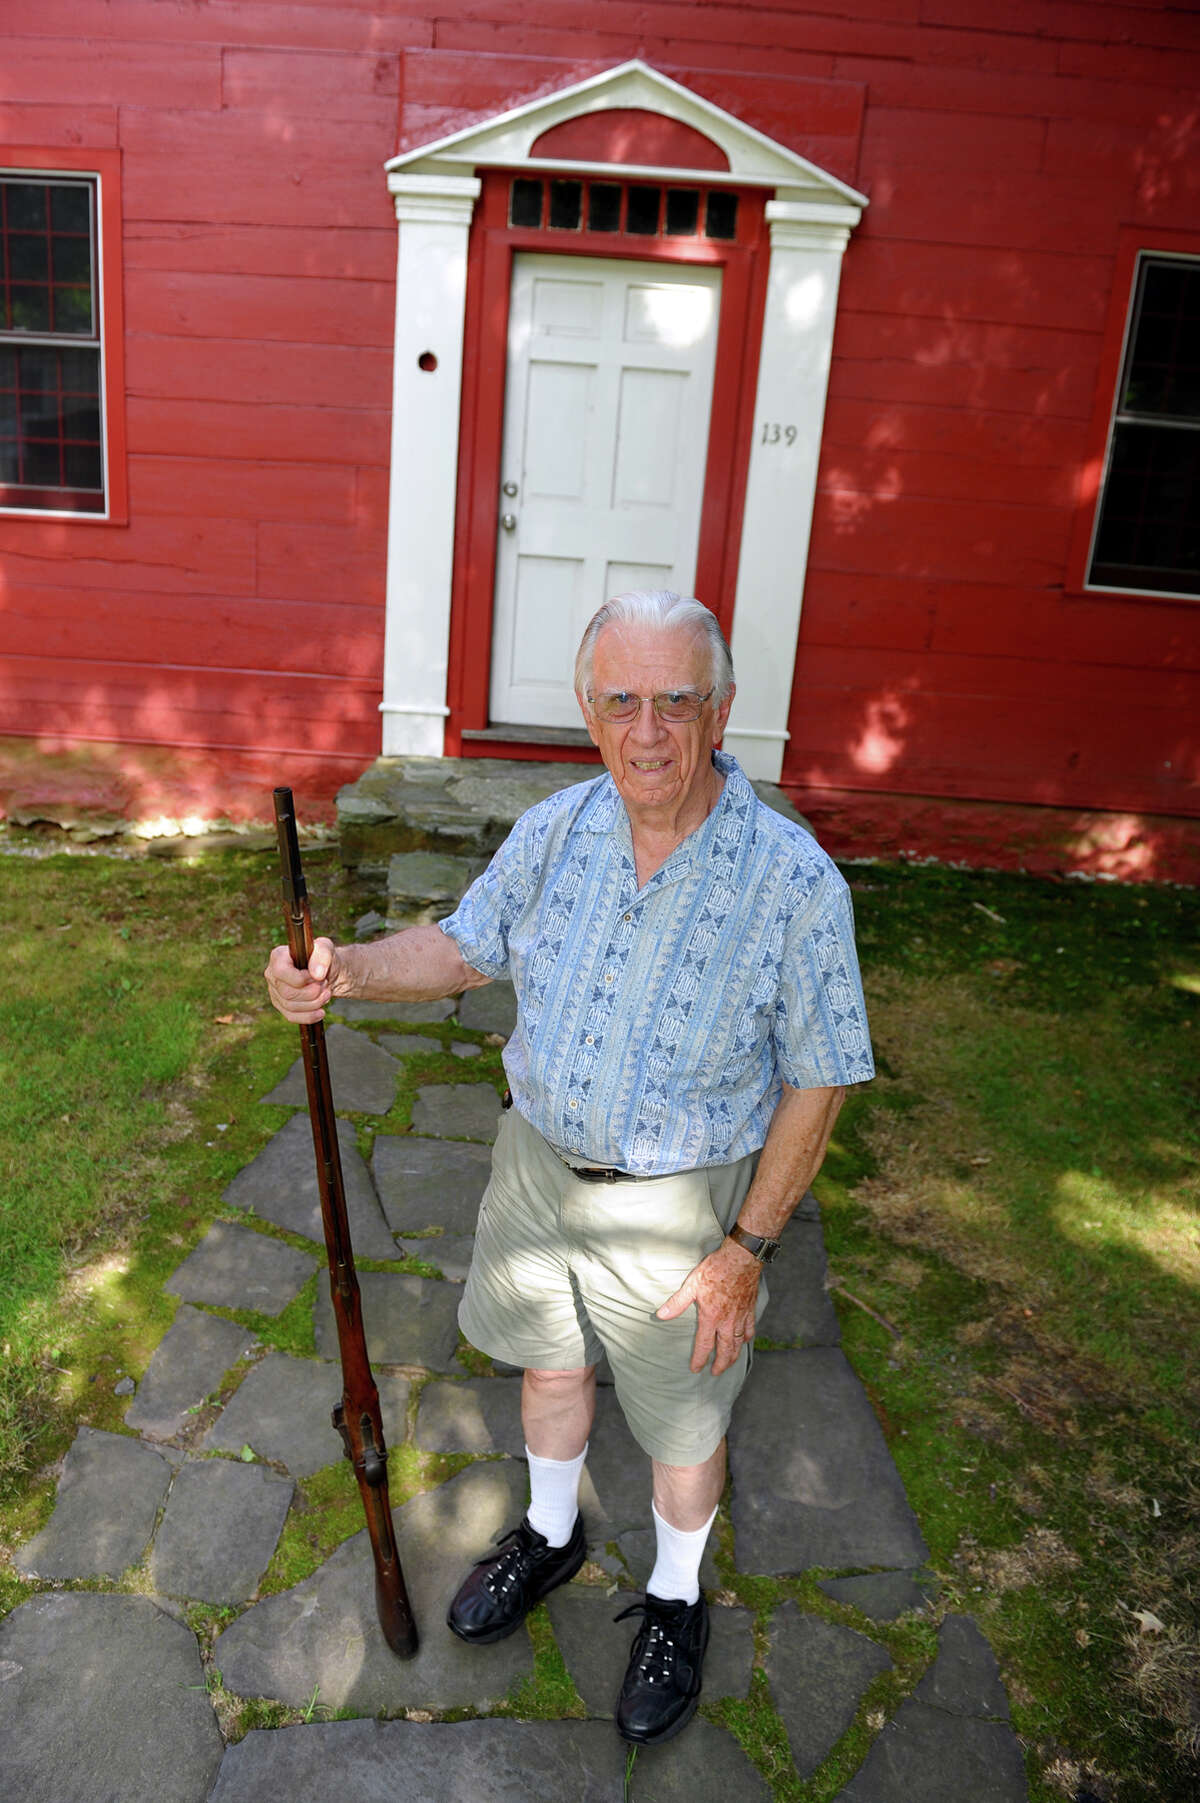 Milford historian Richard Platt with a Revolutionary War musket in front of the historic John Downs house in Milford, Conn. on July 3, 2012. The musket belonged to a British soldier who was killed in a battle and was taken by a relative of Platt's.